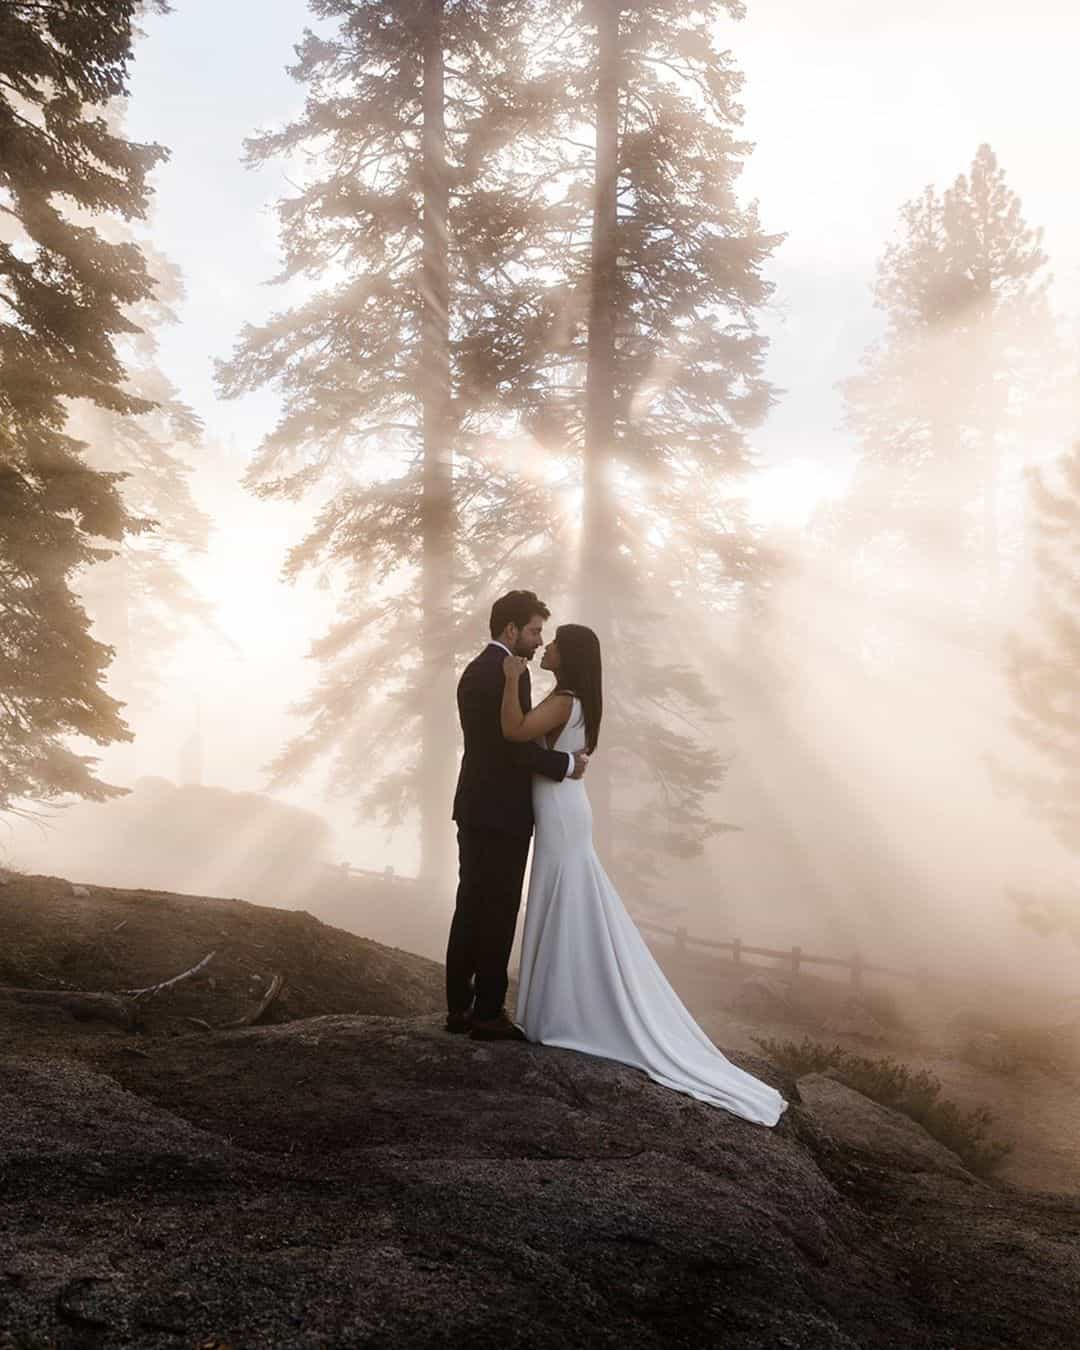 Wedding Photography by Abbi and Callen Hearne